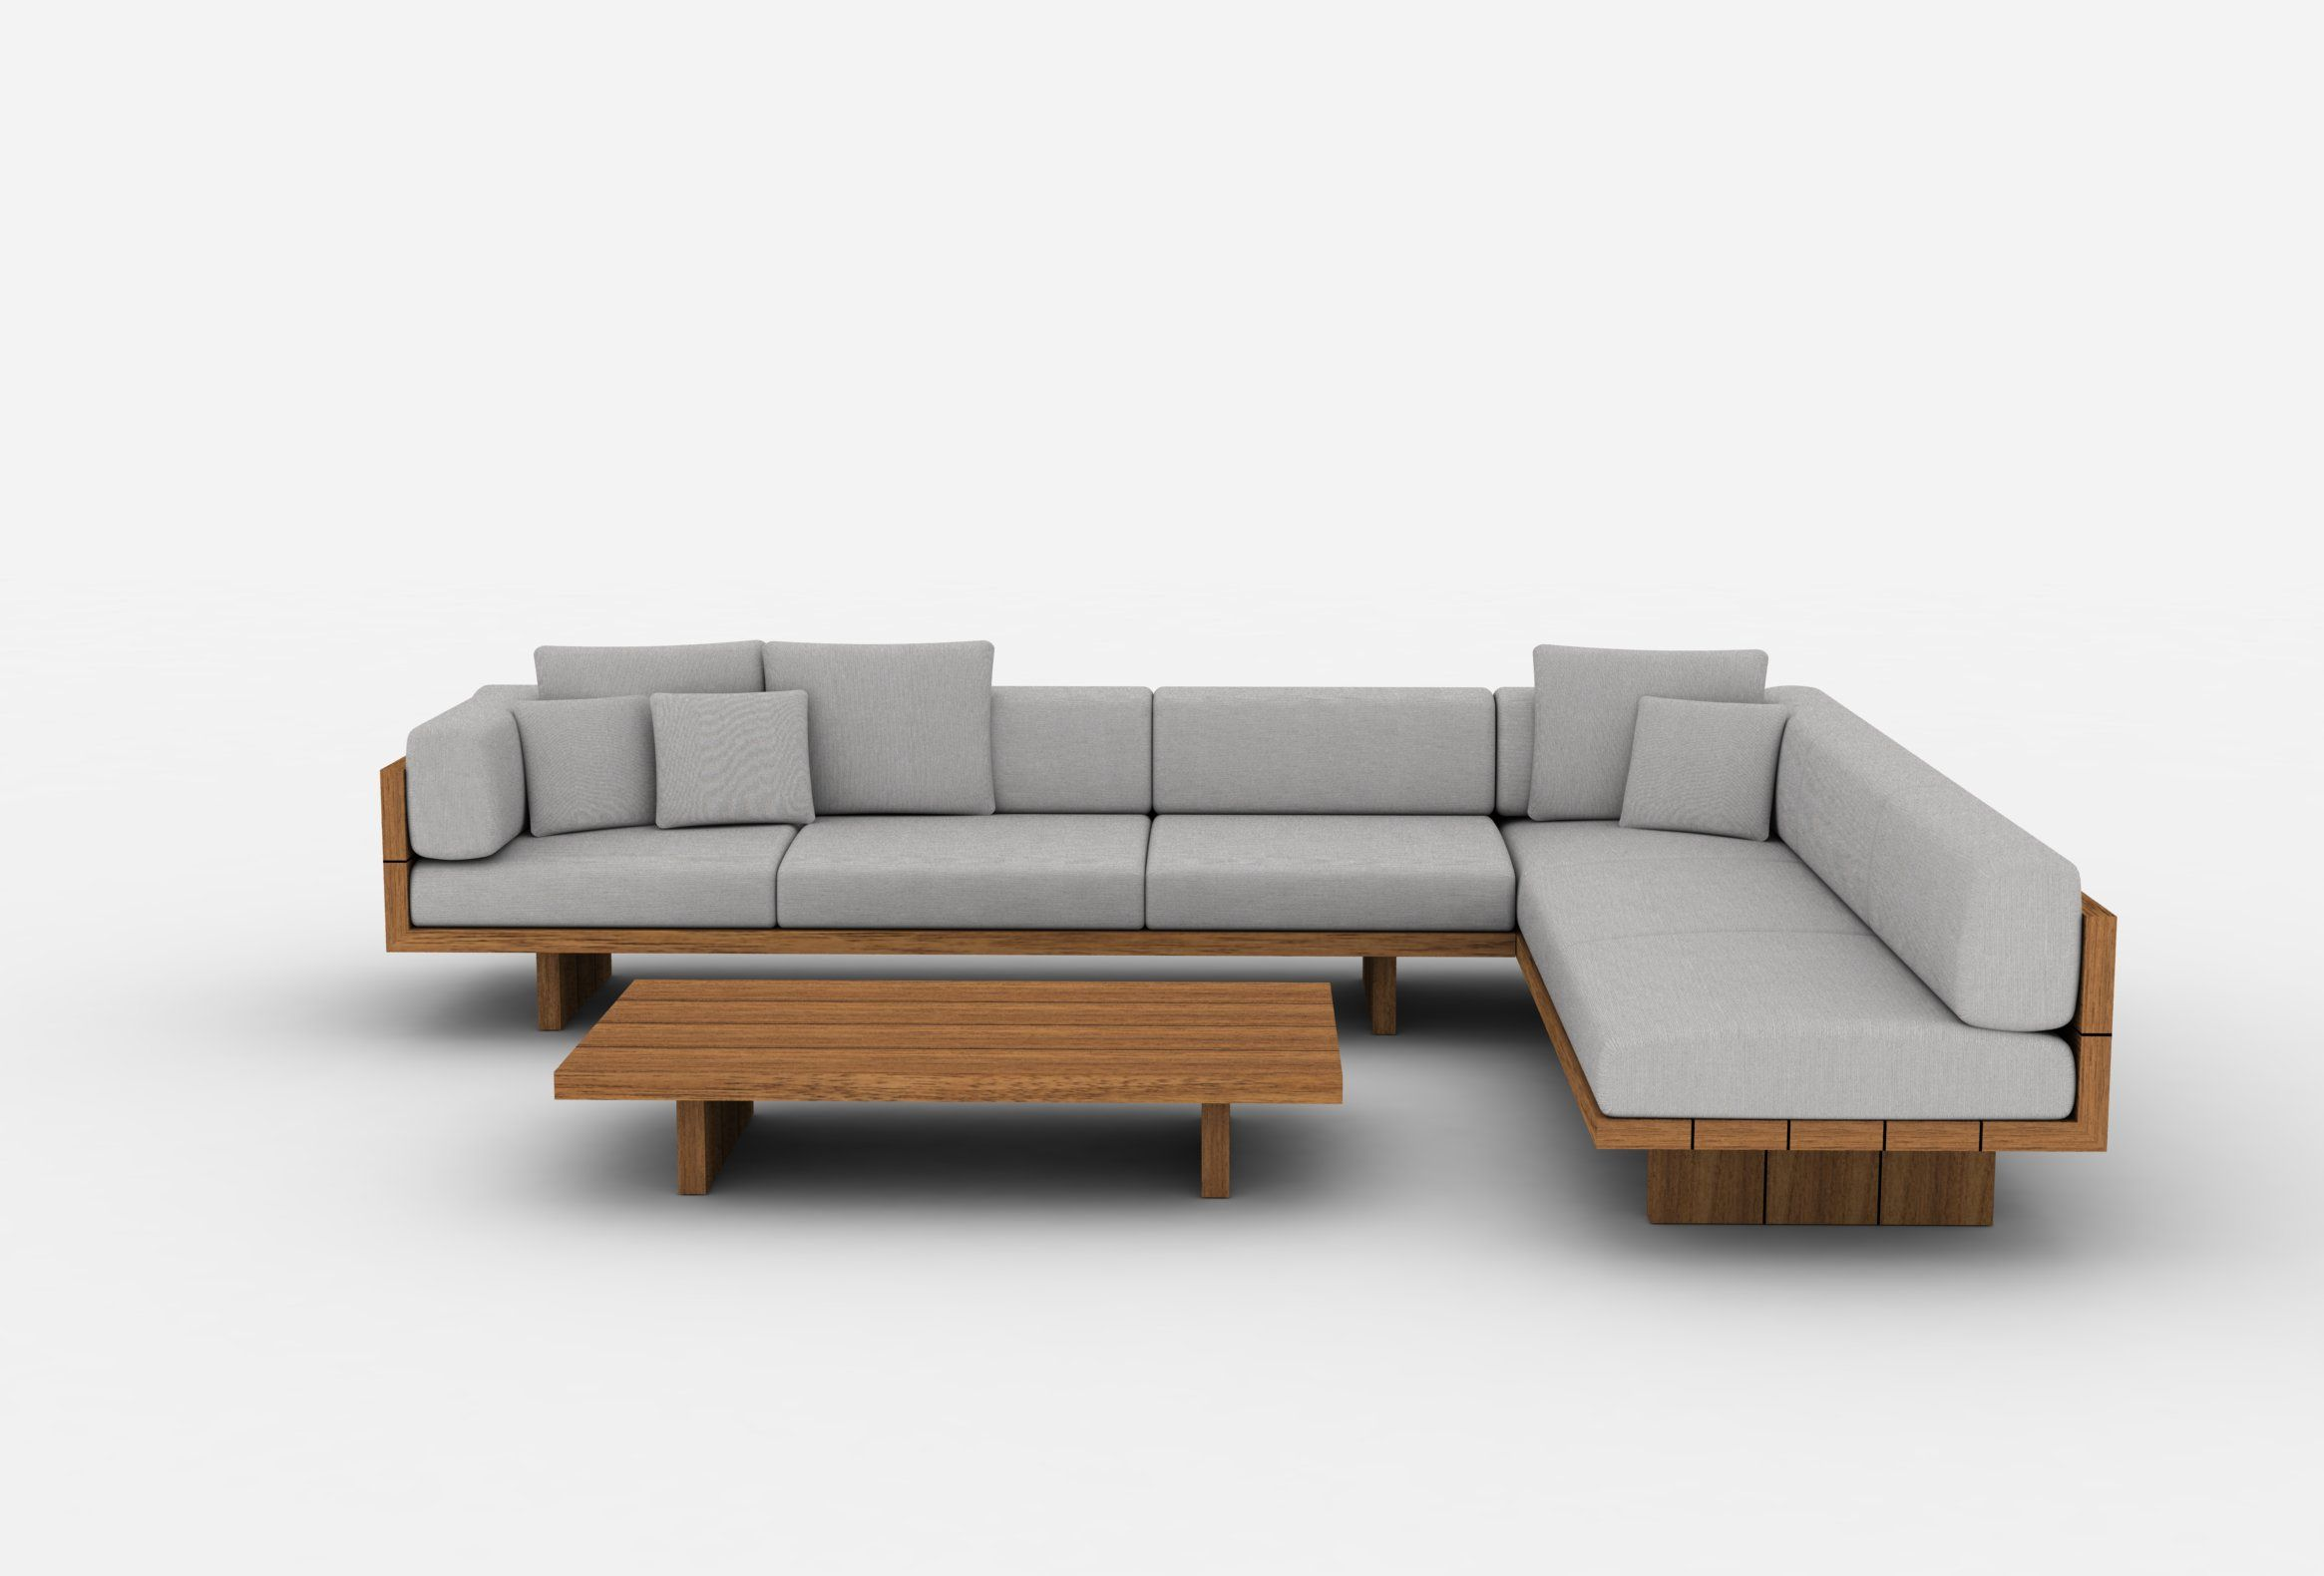 Bettsofa Coco Timber Sofa Ok Wood Sofa Office Sofa Furniture